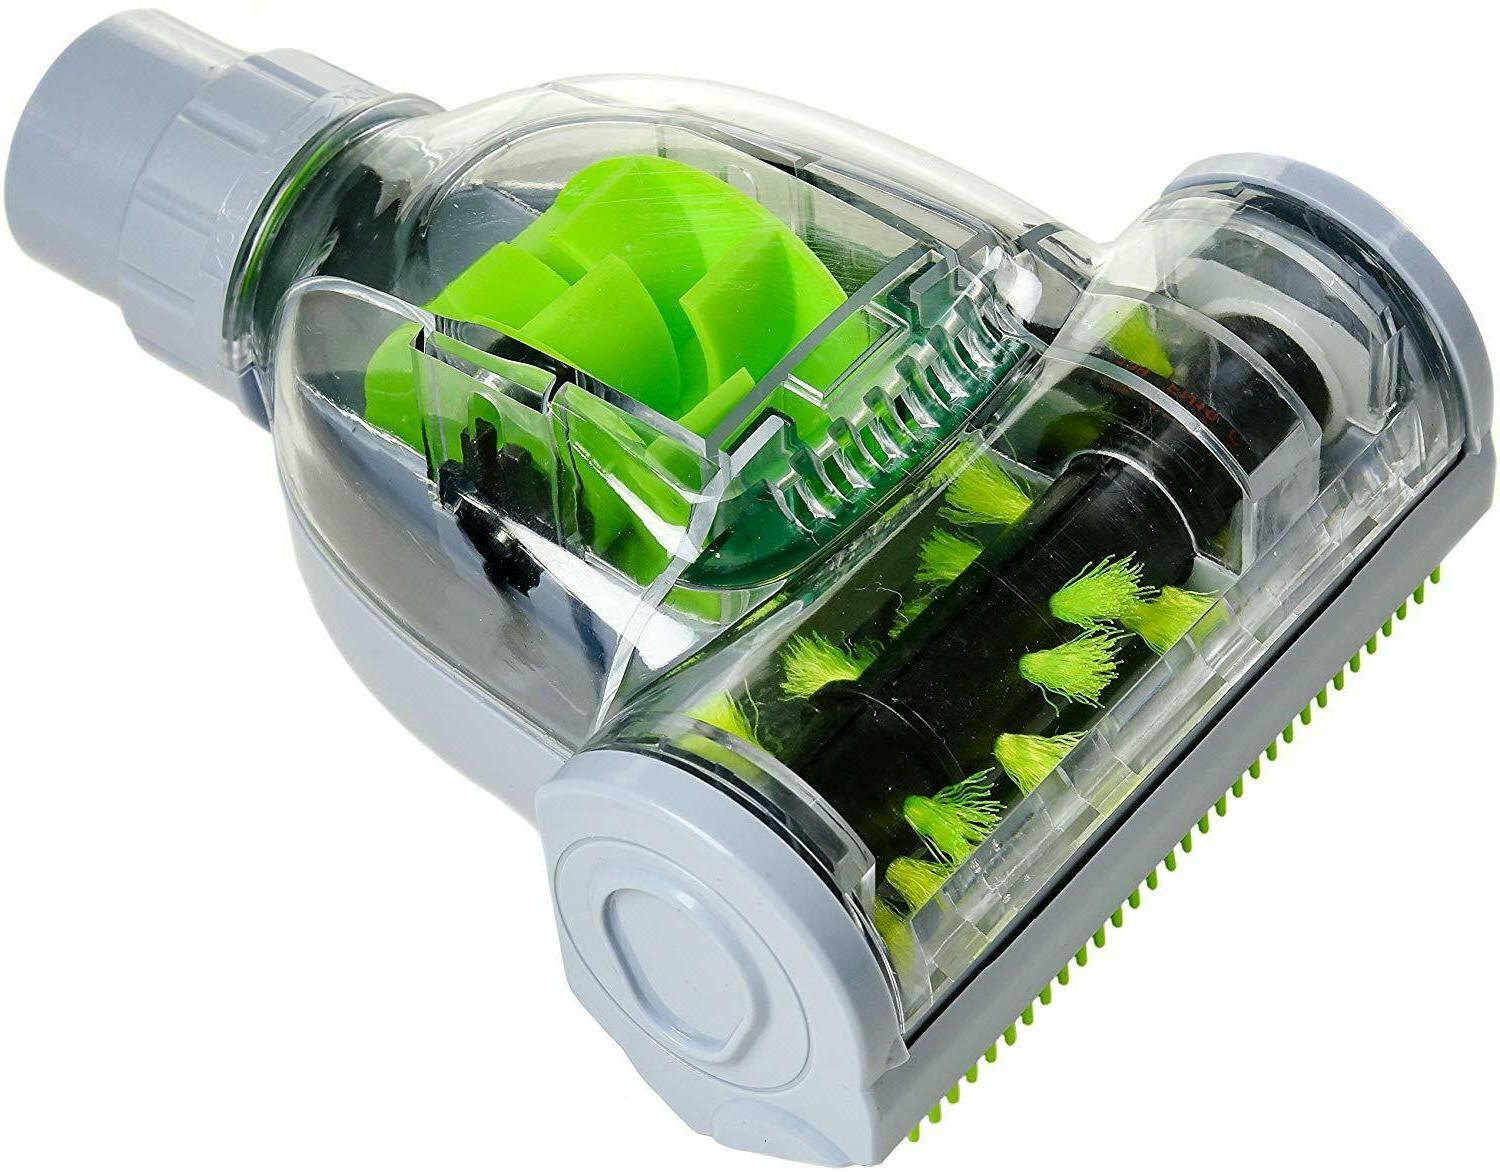 OVENTE Universal Pet/Sofa Brush Attachment for Canister Vacu